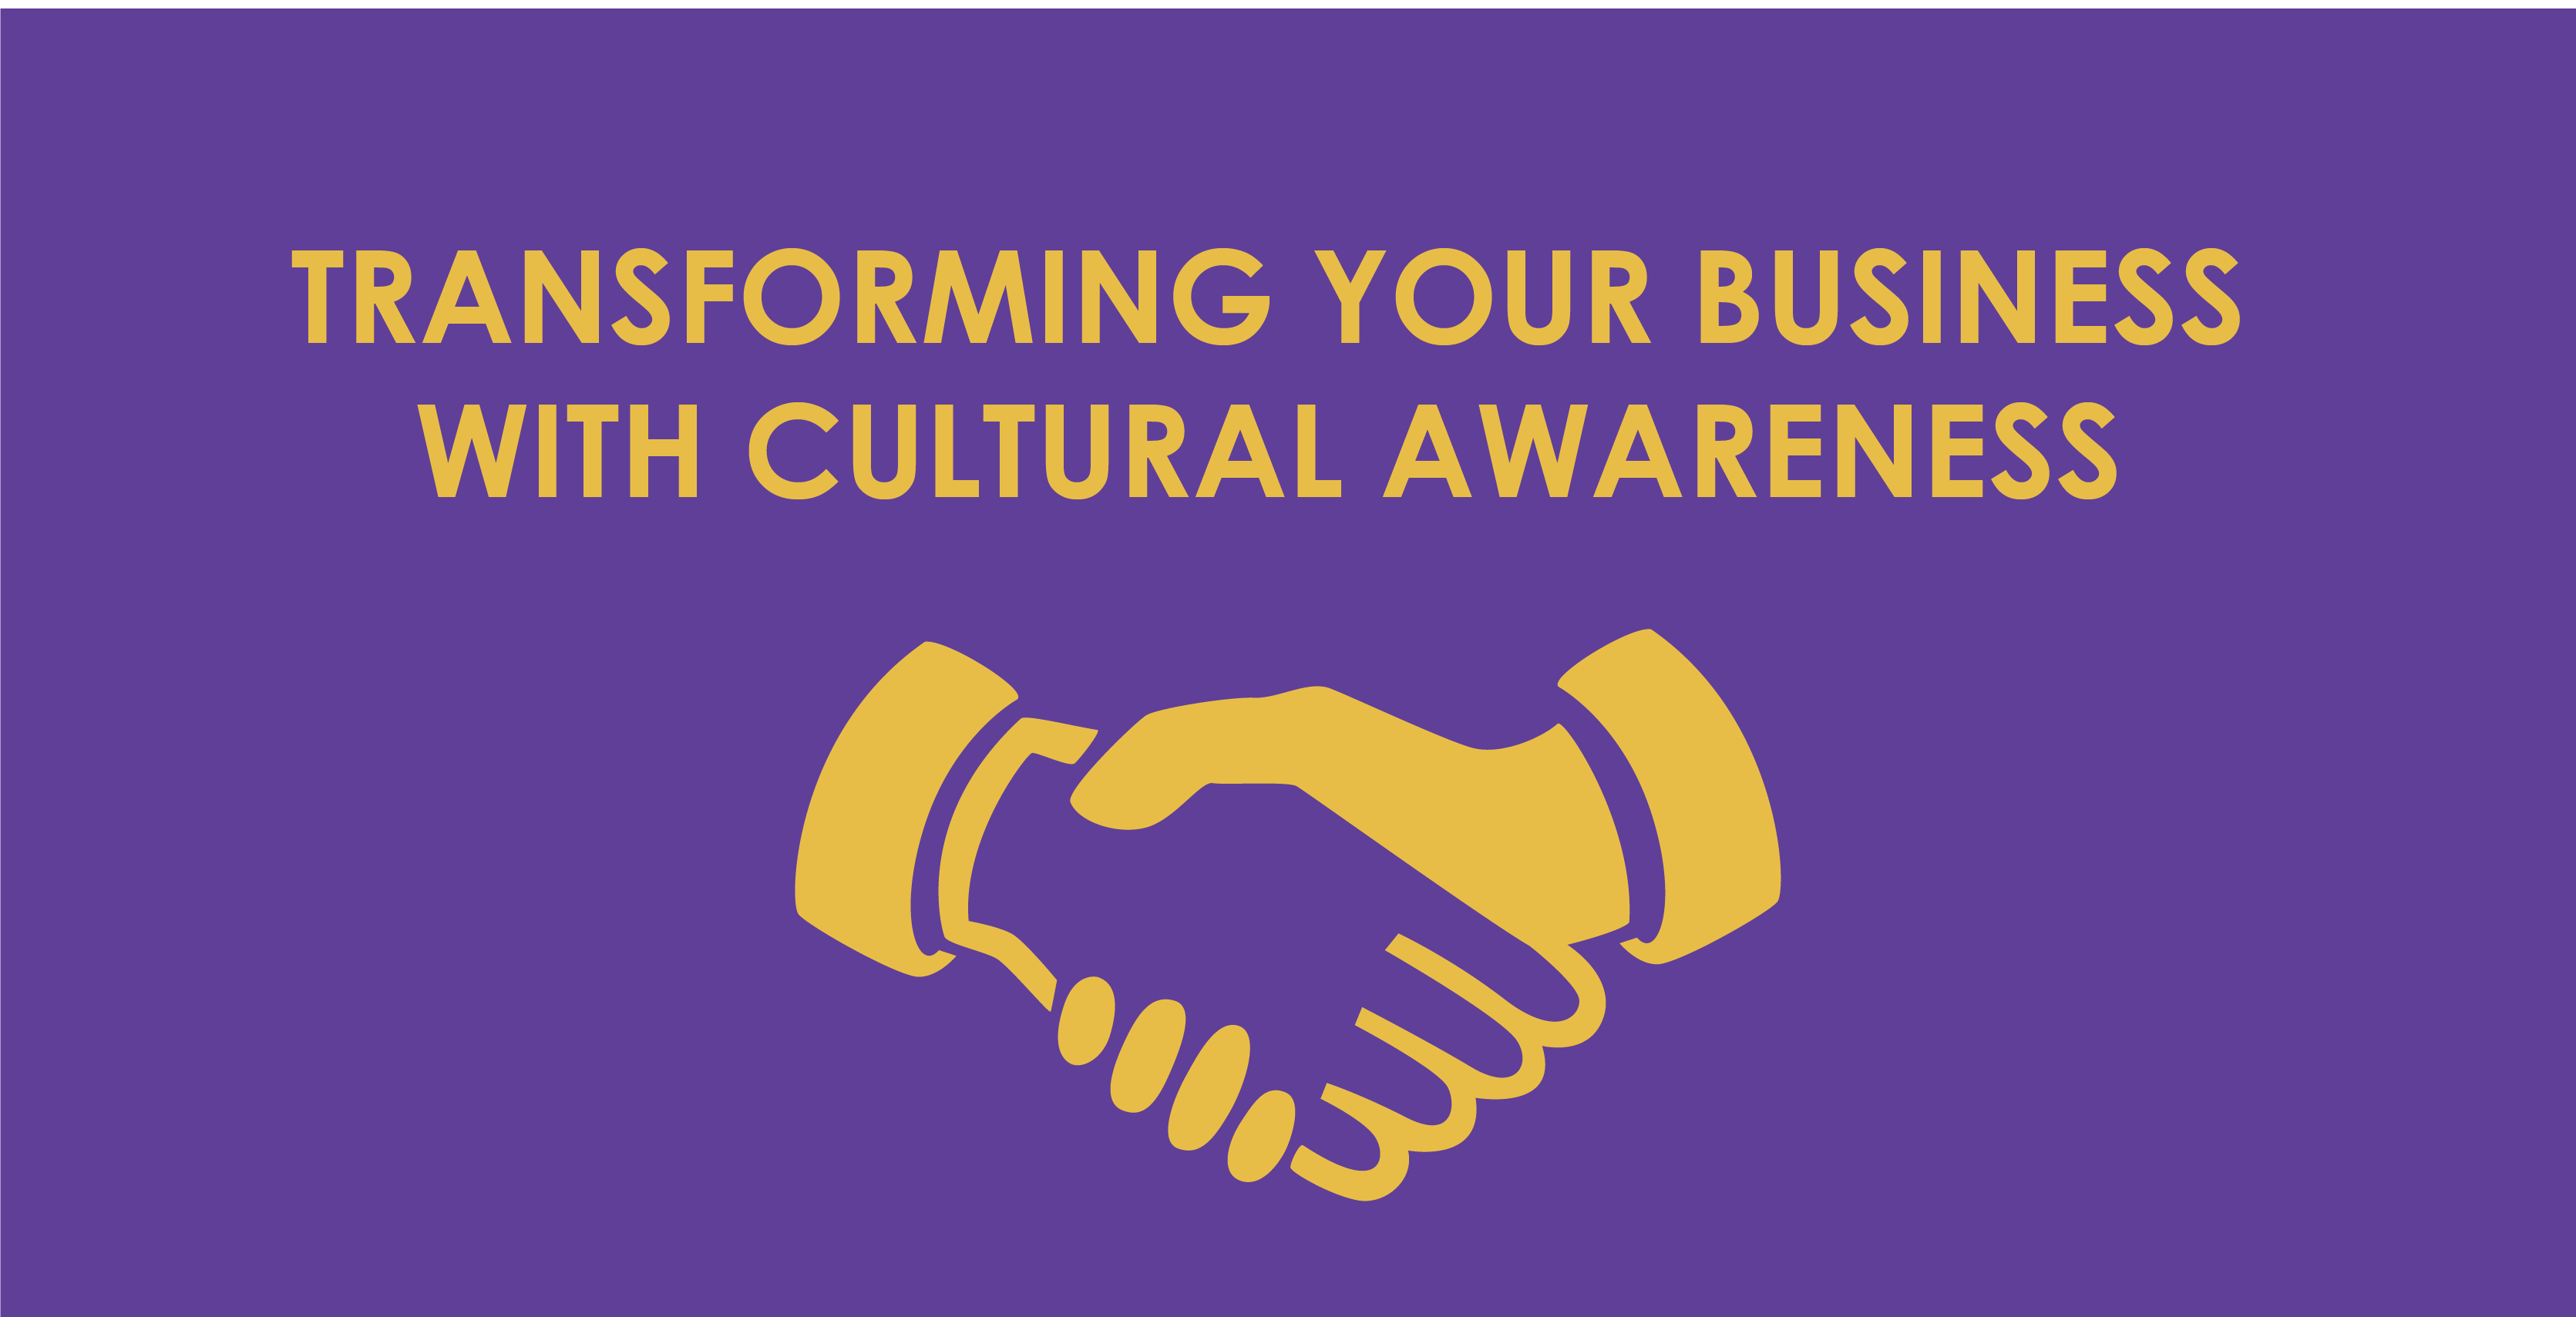 multicultural awareness Imparting cultural awareness is only half the battle, molinsky says the best training programs should also teach employees how to act in cultural situations that make them uncomfortable shrm article: global training sought for leaders of multicultural teams shrm toolkit.